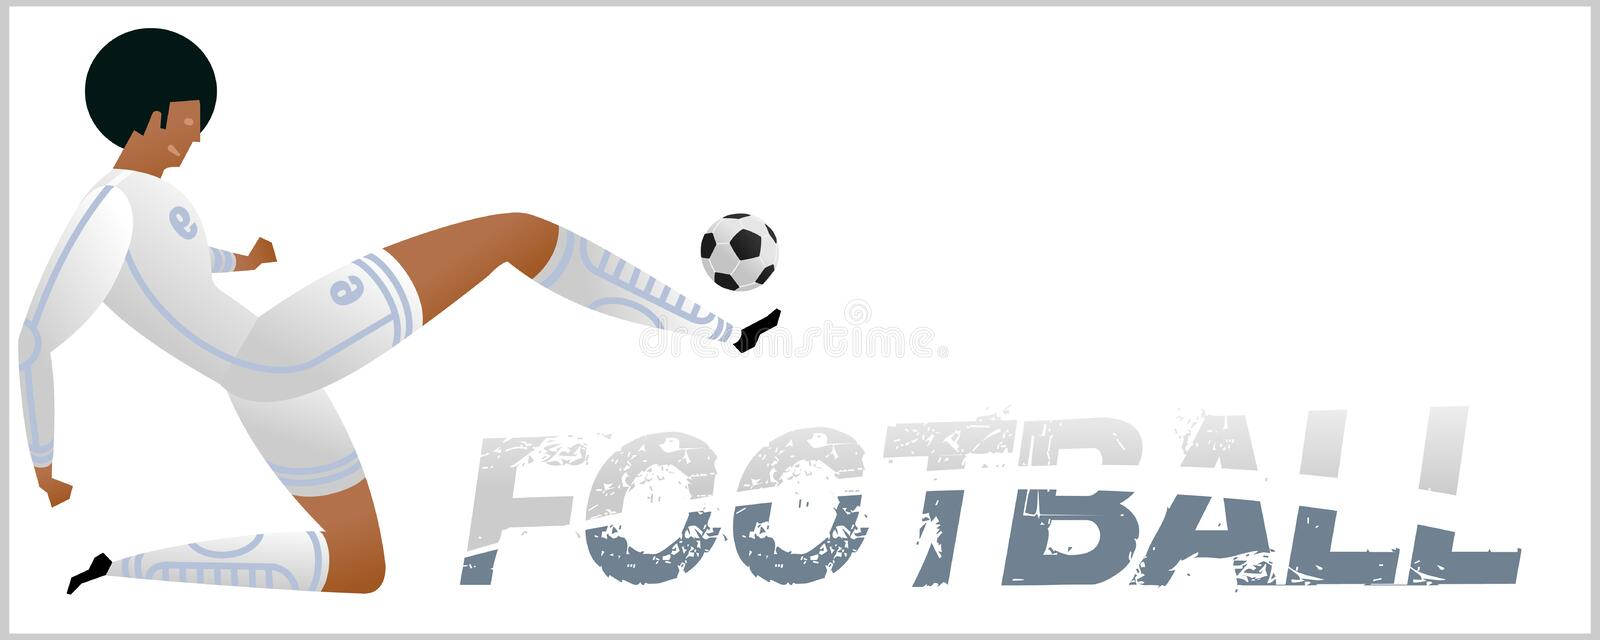 Banner with soccer player. Lettering Football with two ball. Football player in campionship. Fool color vector illustration in flat style isolated on white royalty free illustration